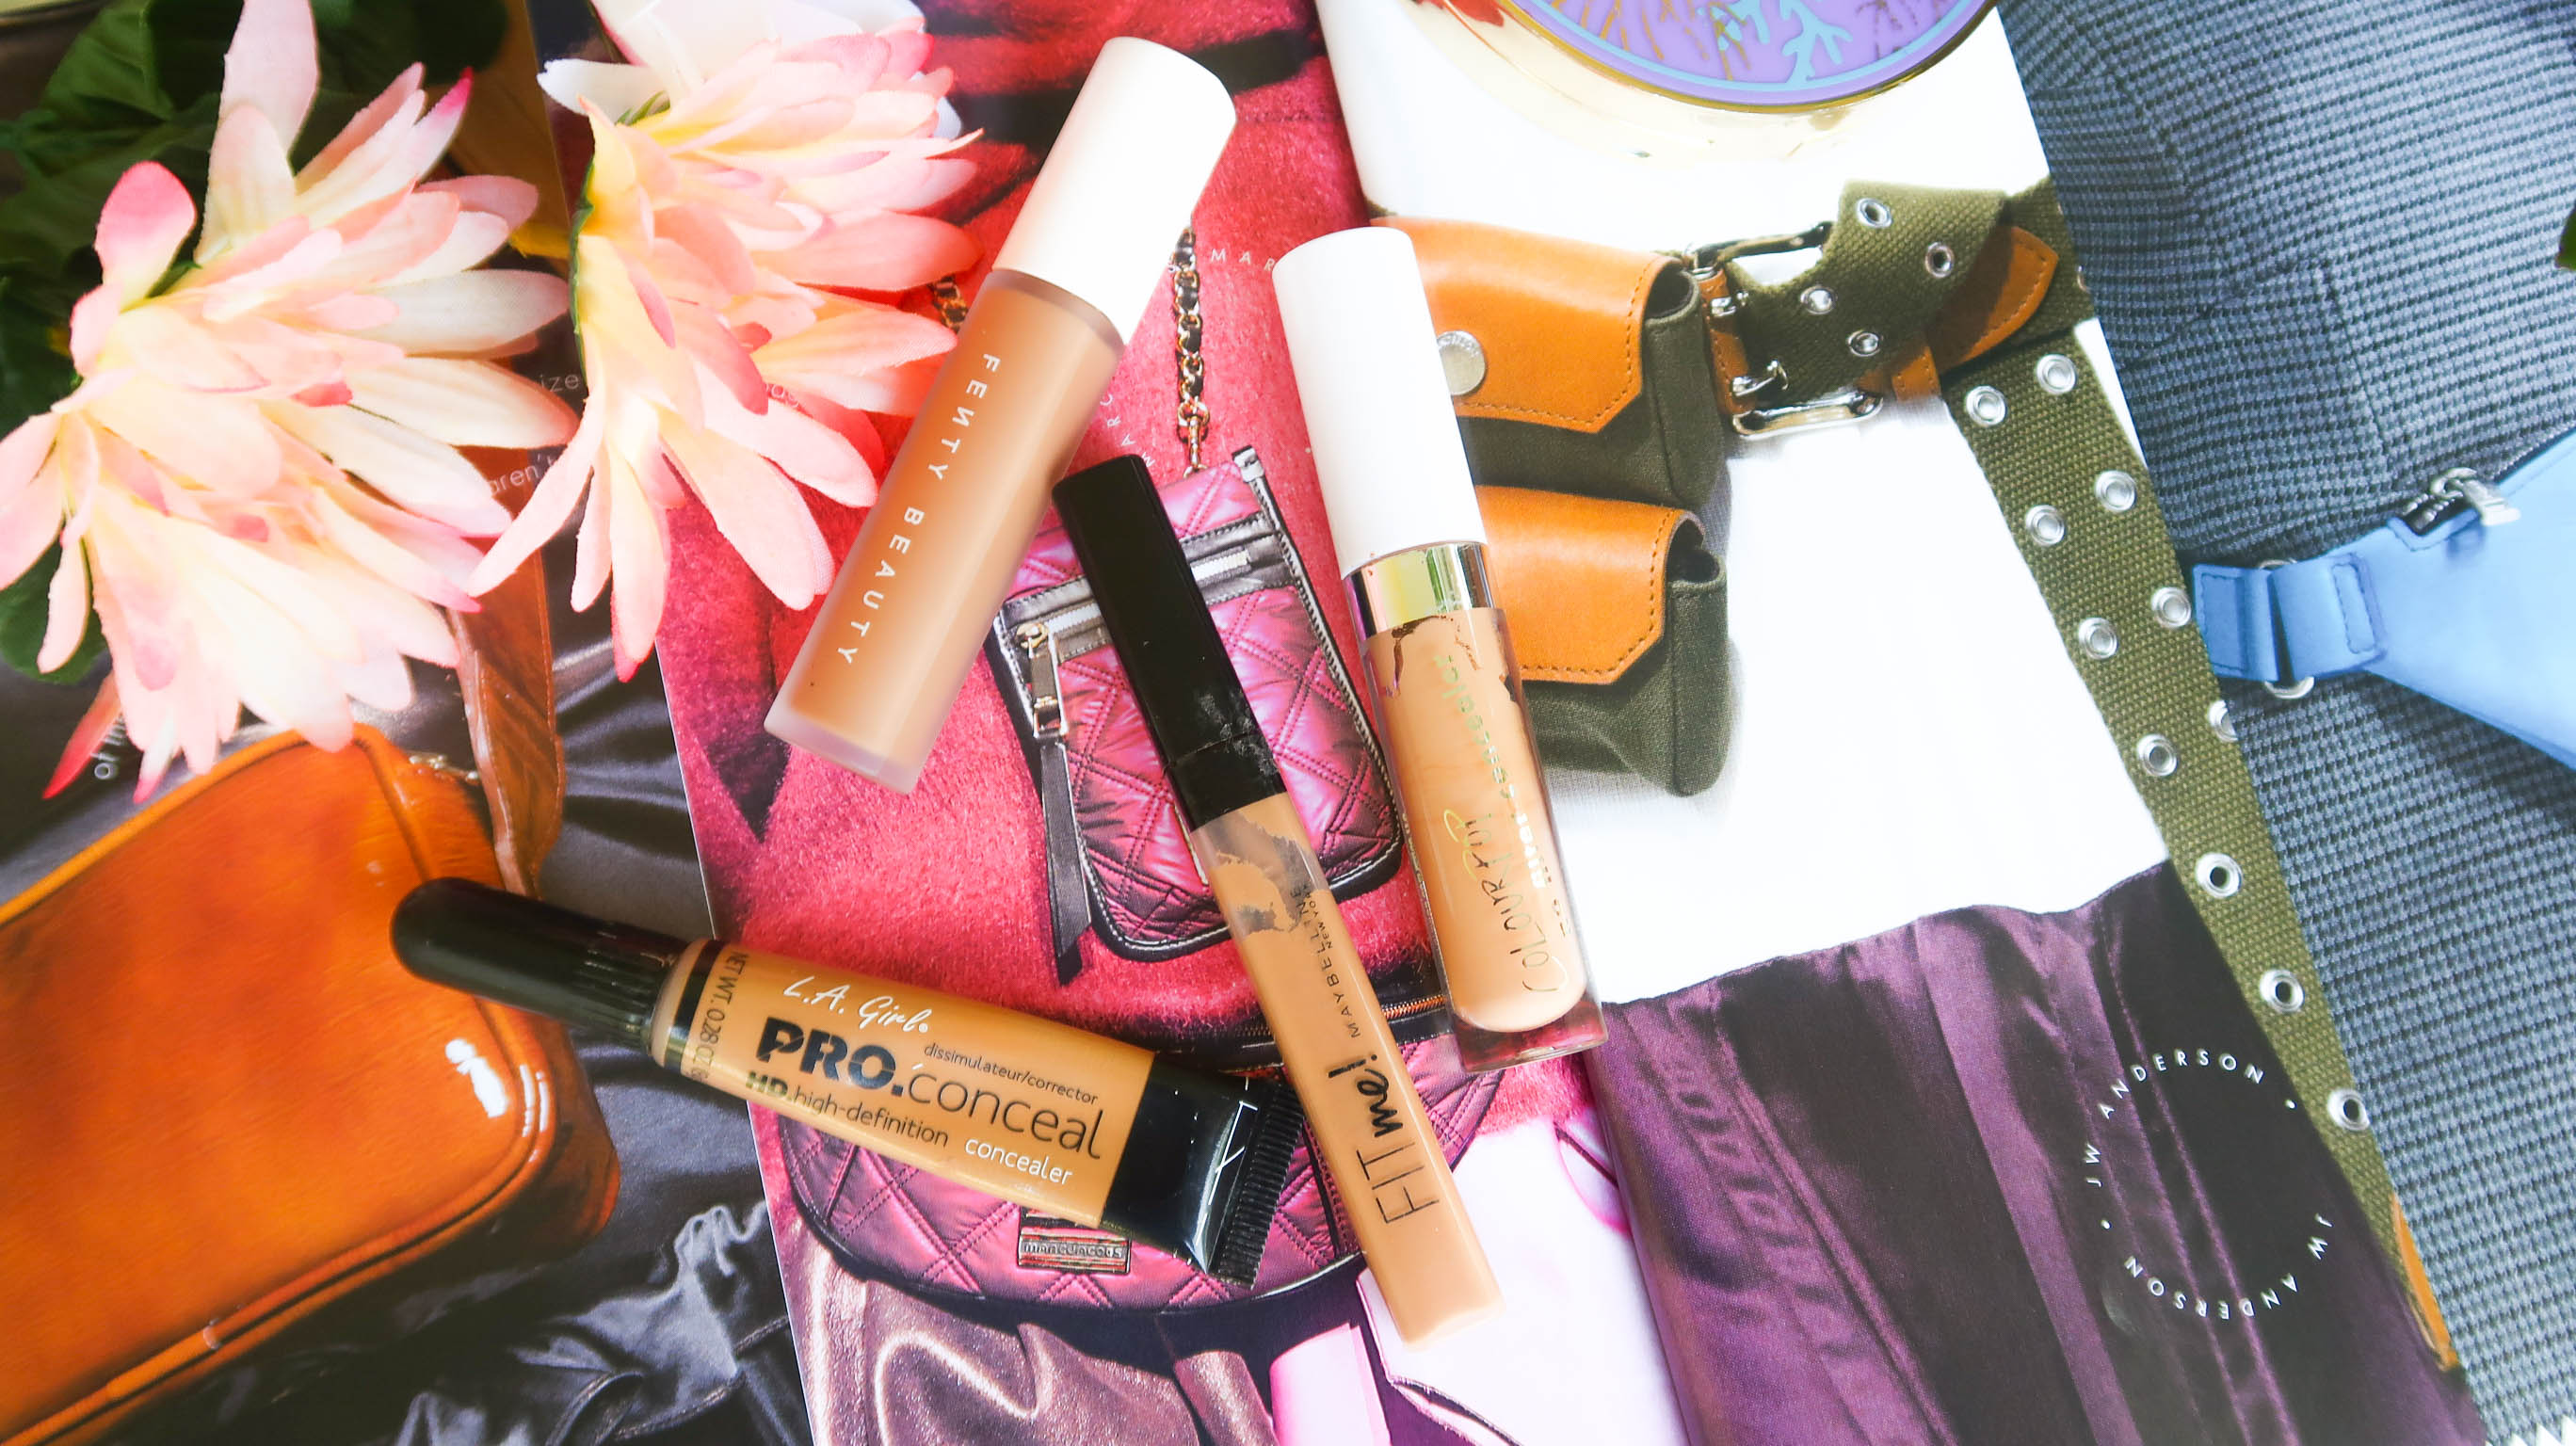 Concealer collection